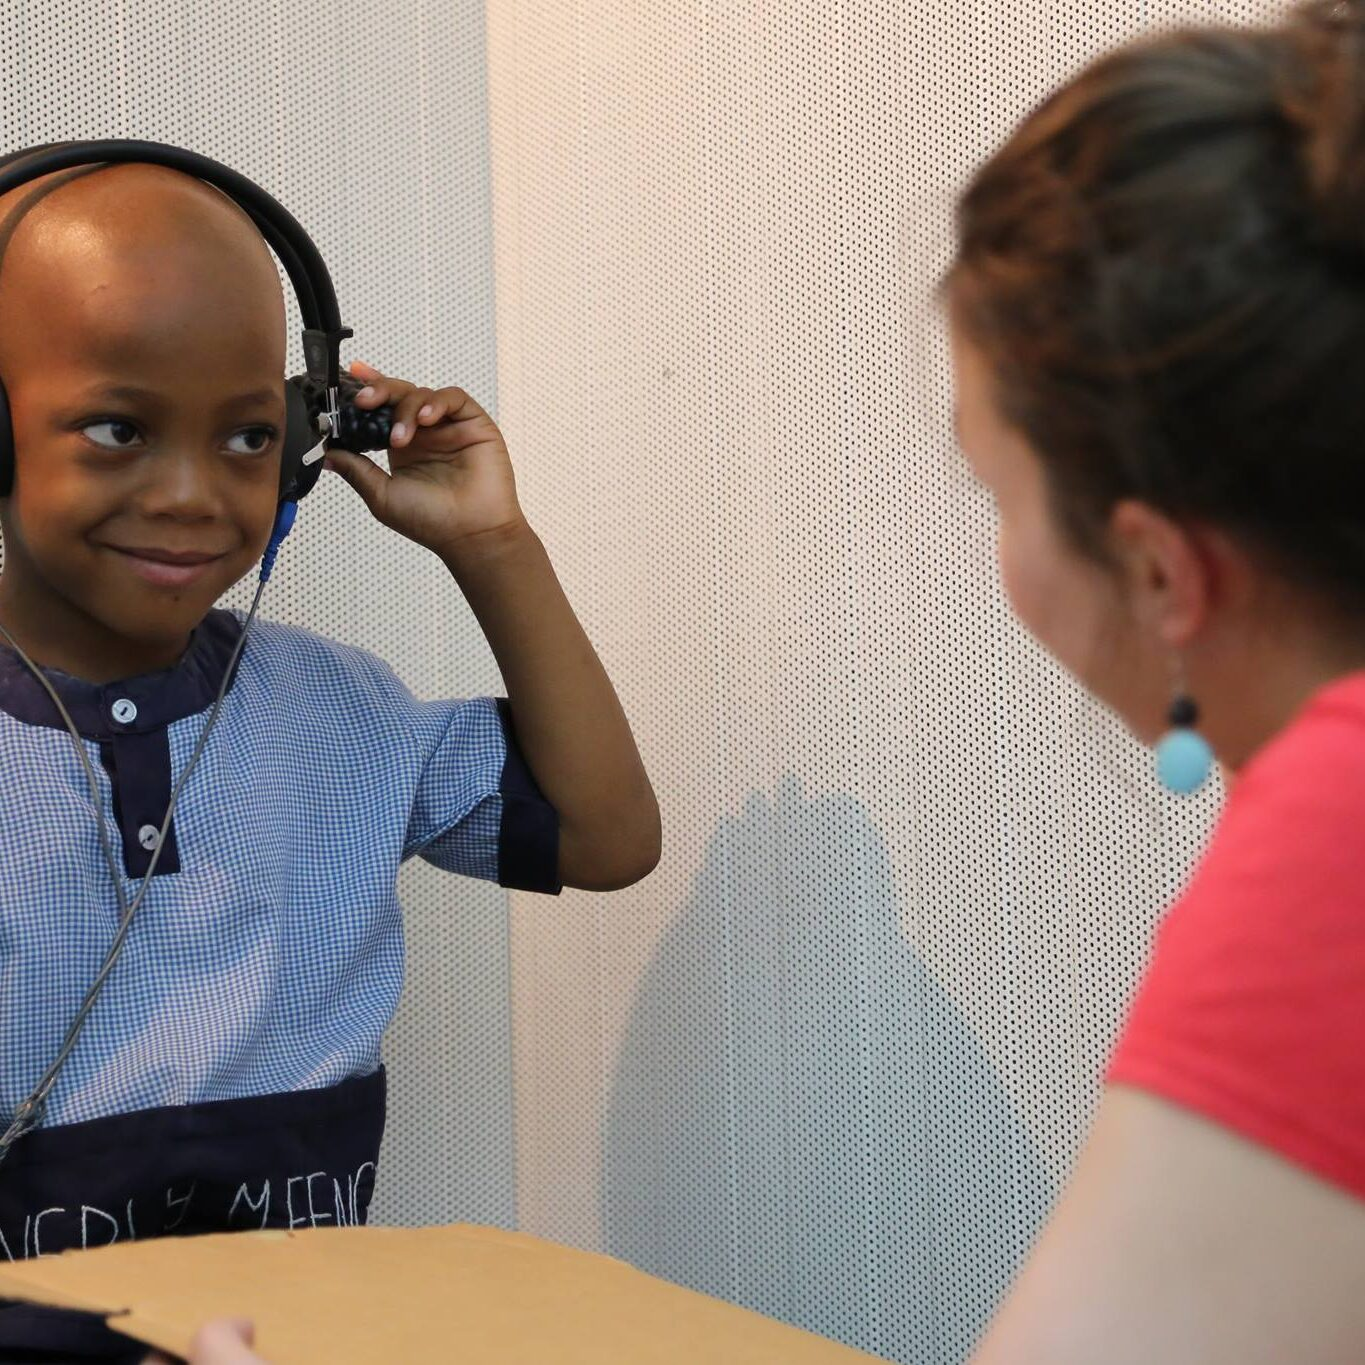 audiology boy with head phones testing